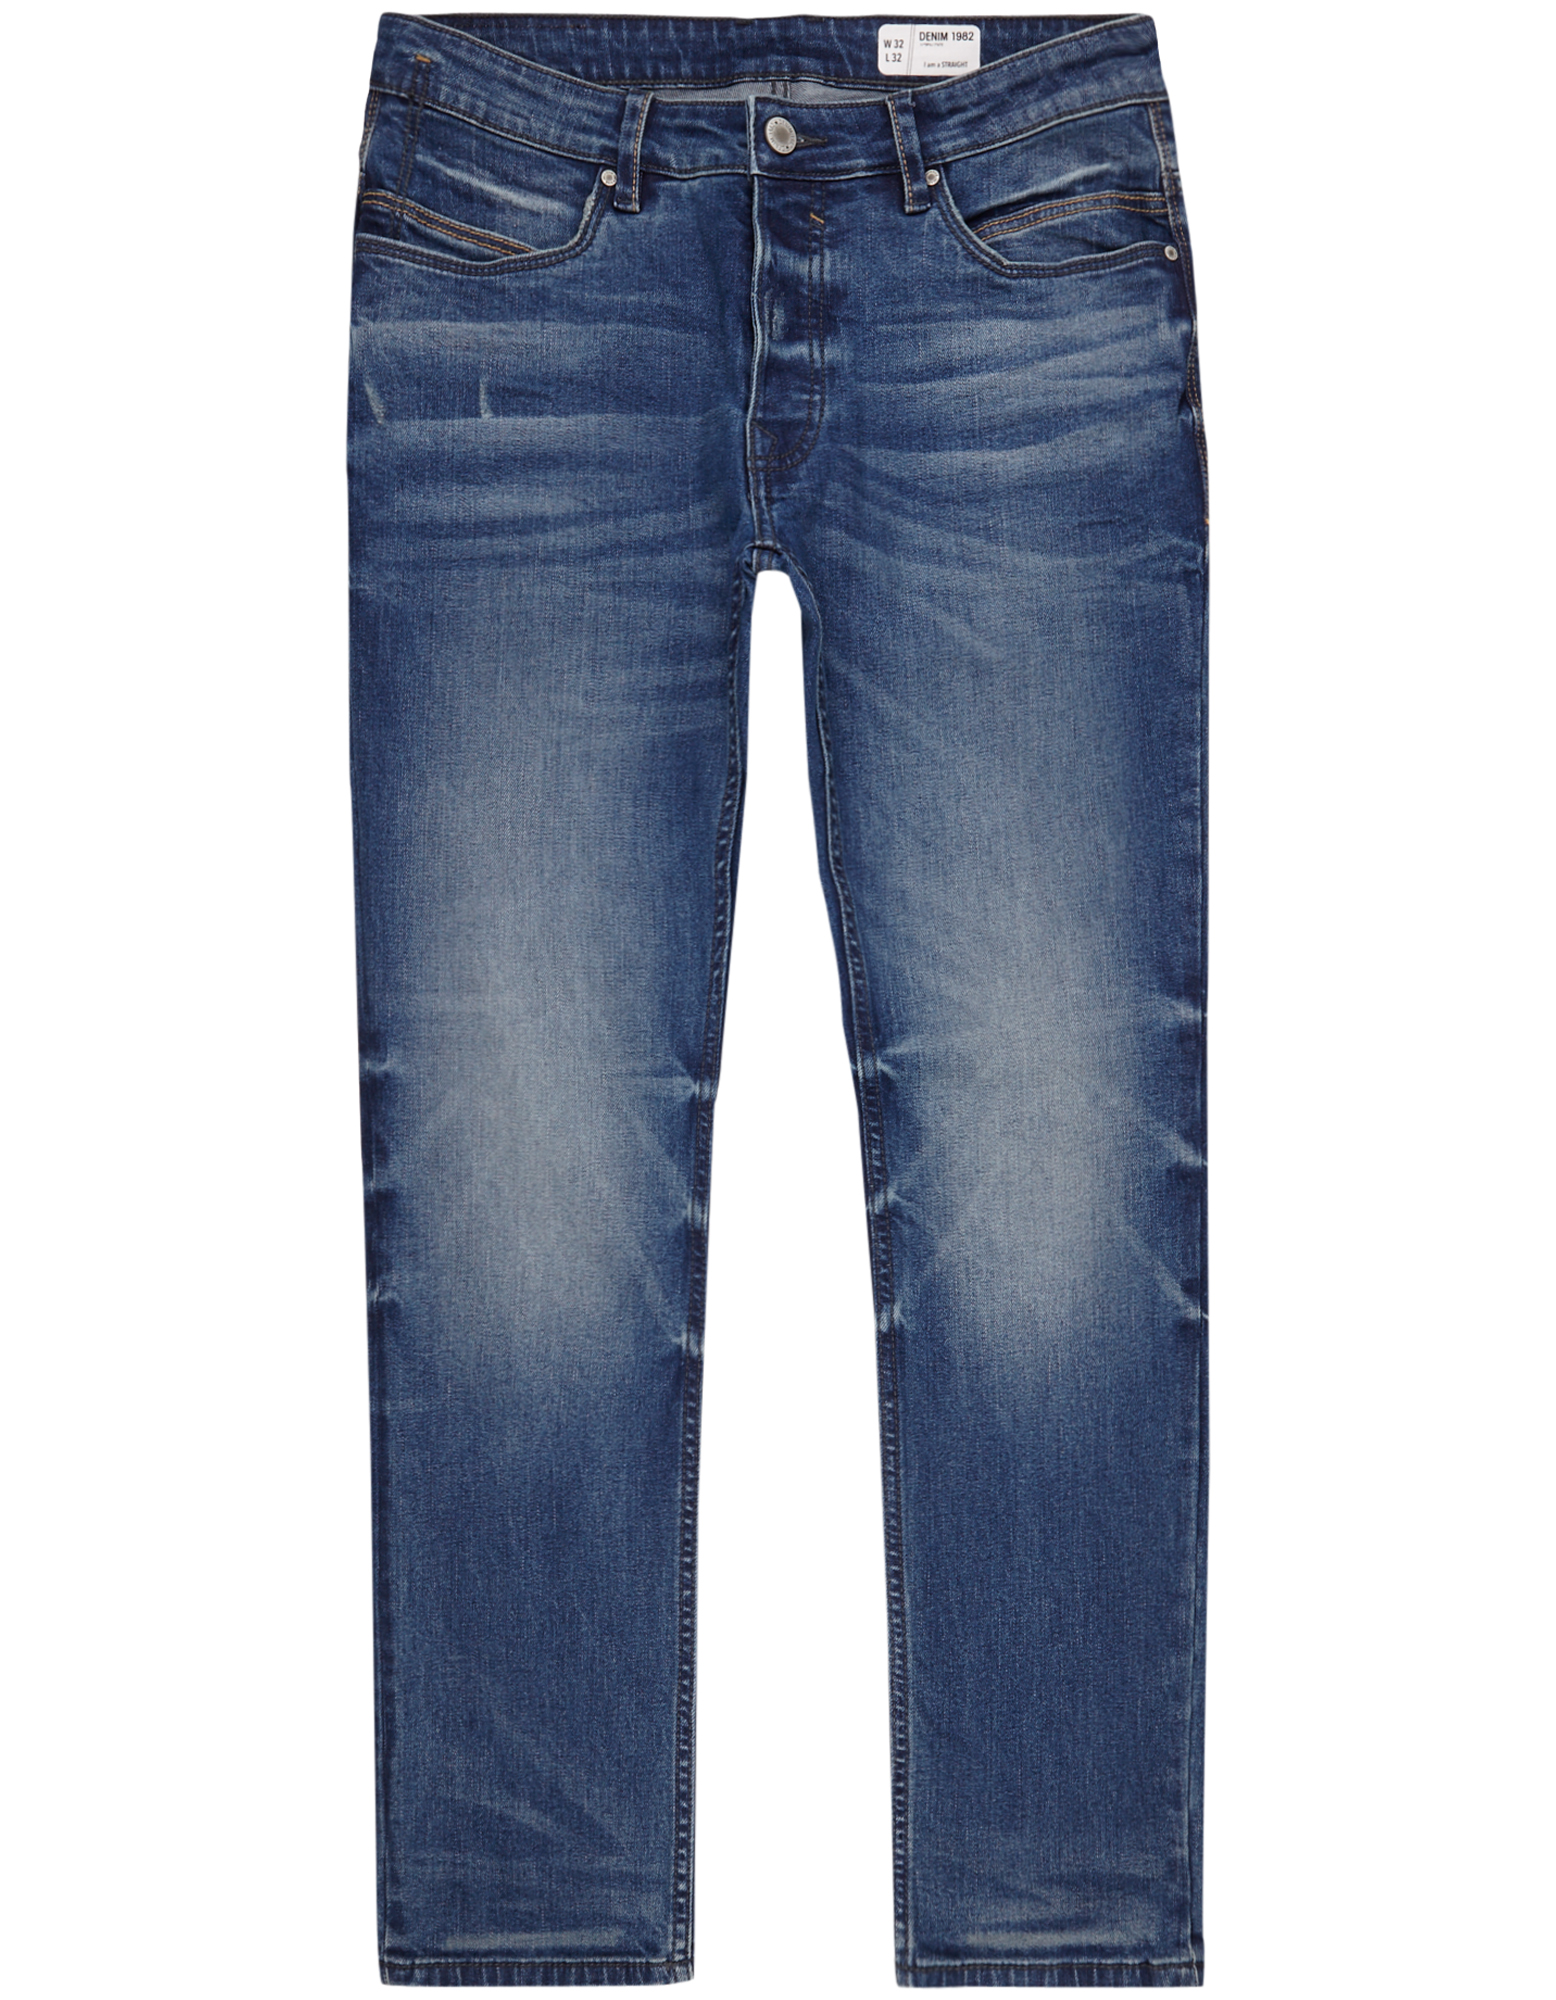 Herren Straight Fit Jeans im Used Look  | 81511669950506